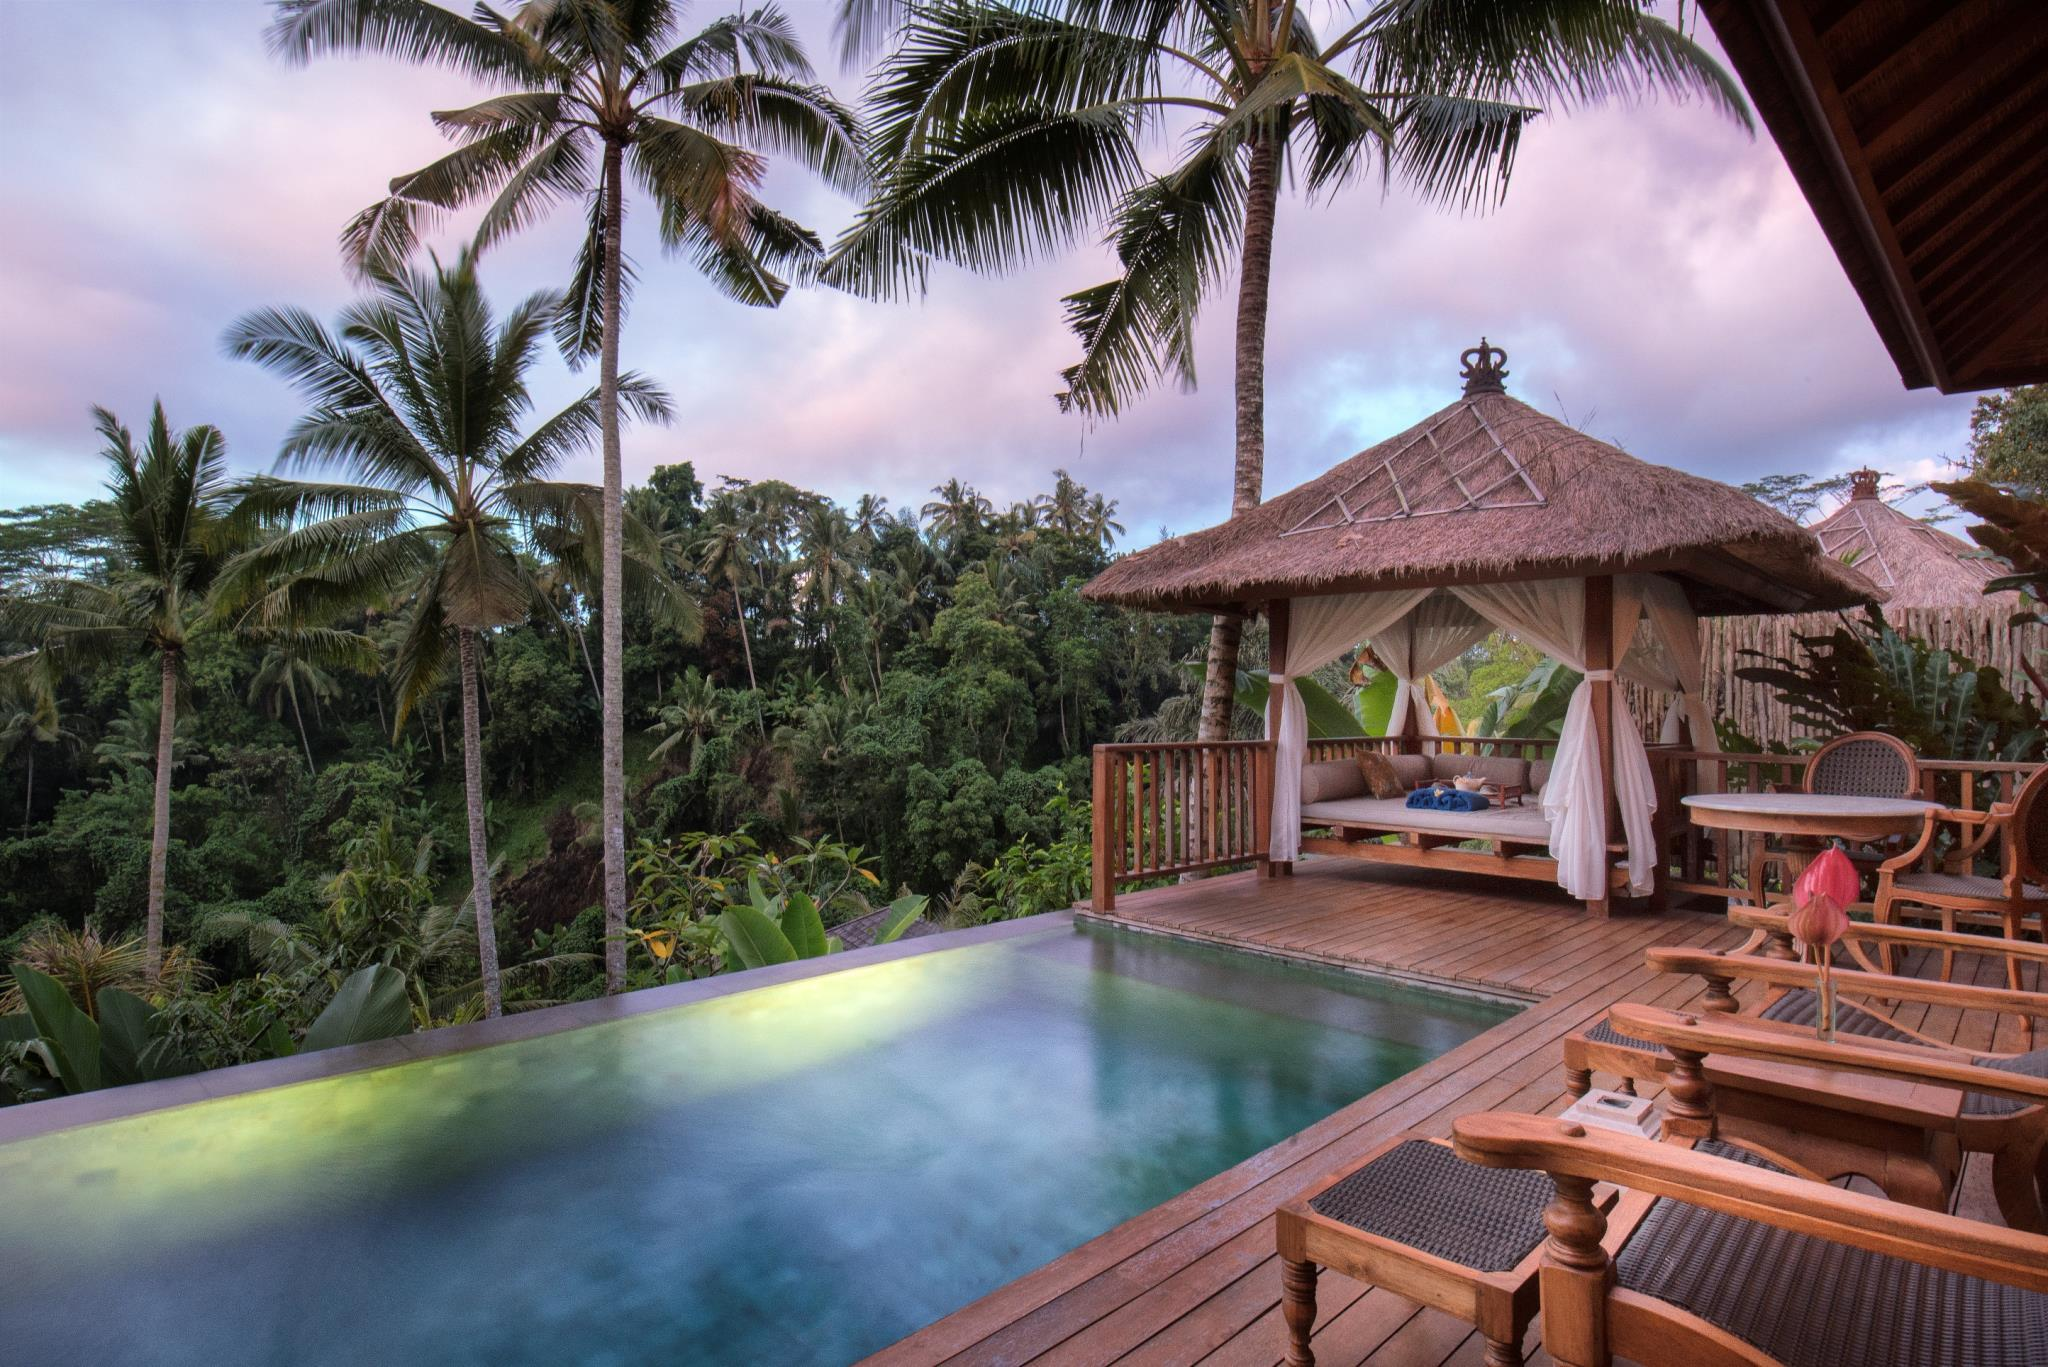 Natya Resort Ubud ホテル詳細